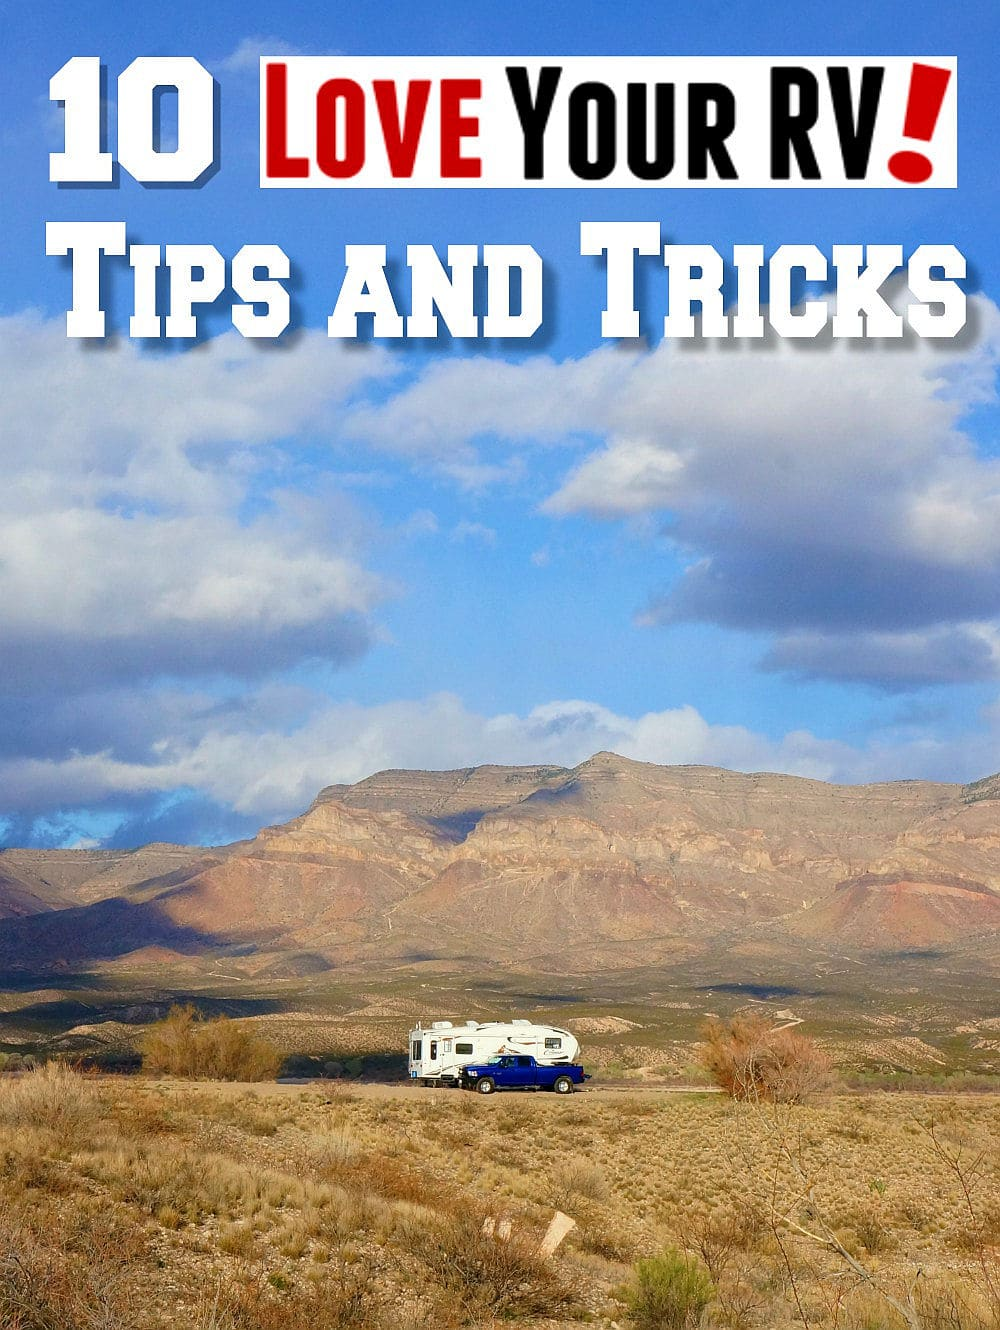 10 Little RVing Tips and Tricks from Love Your RV - https://www.loveyourrv.com/10-little-love-your-rv-tips-and-tricks/